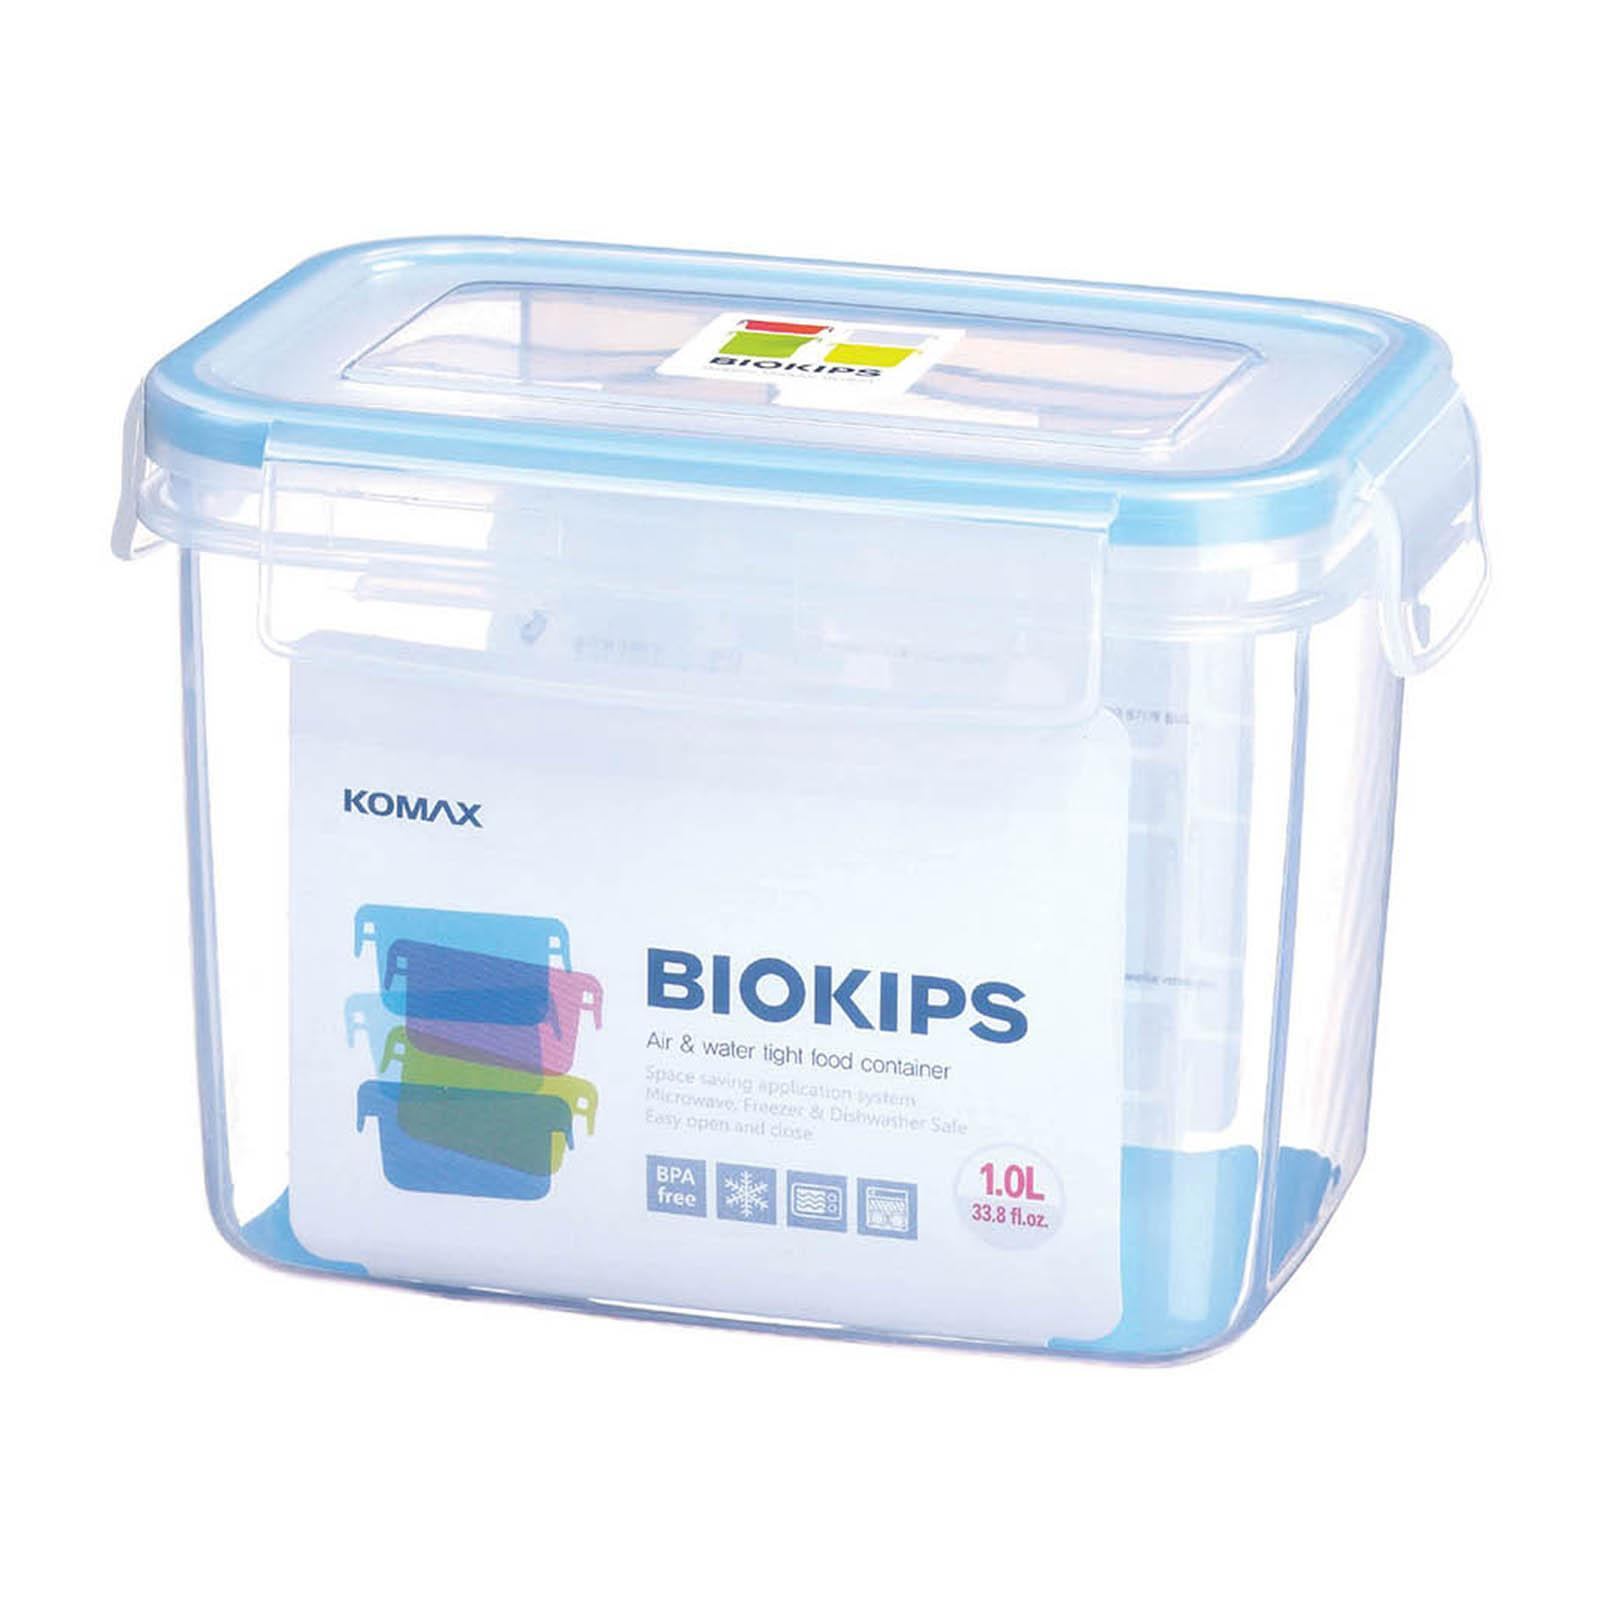 Latest Komax Food Containers Products | Enjoy Huge Discounts